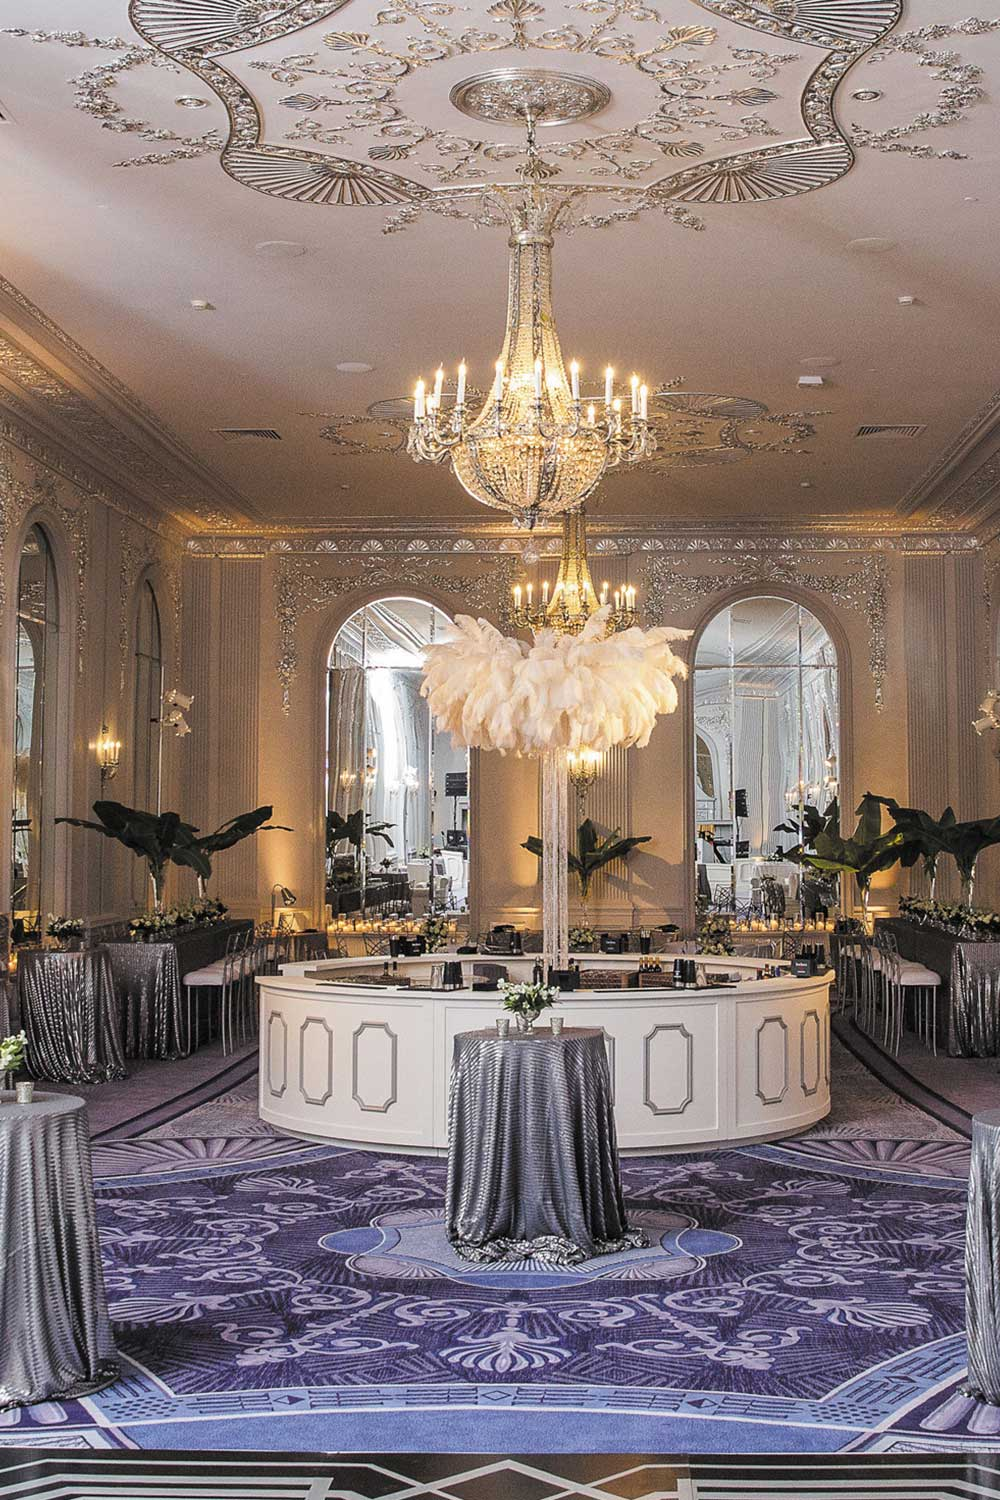 Wedding Venue room with silver wall designs and a large crystal chandelier